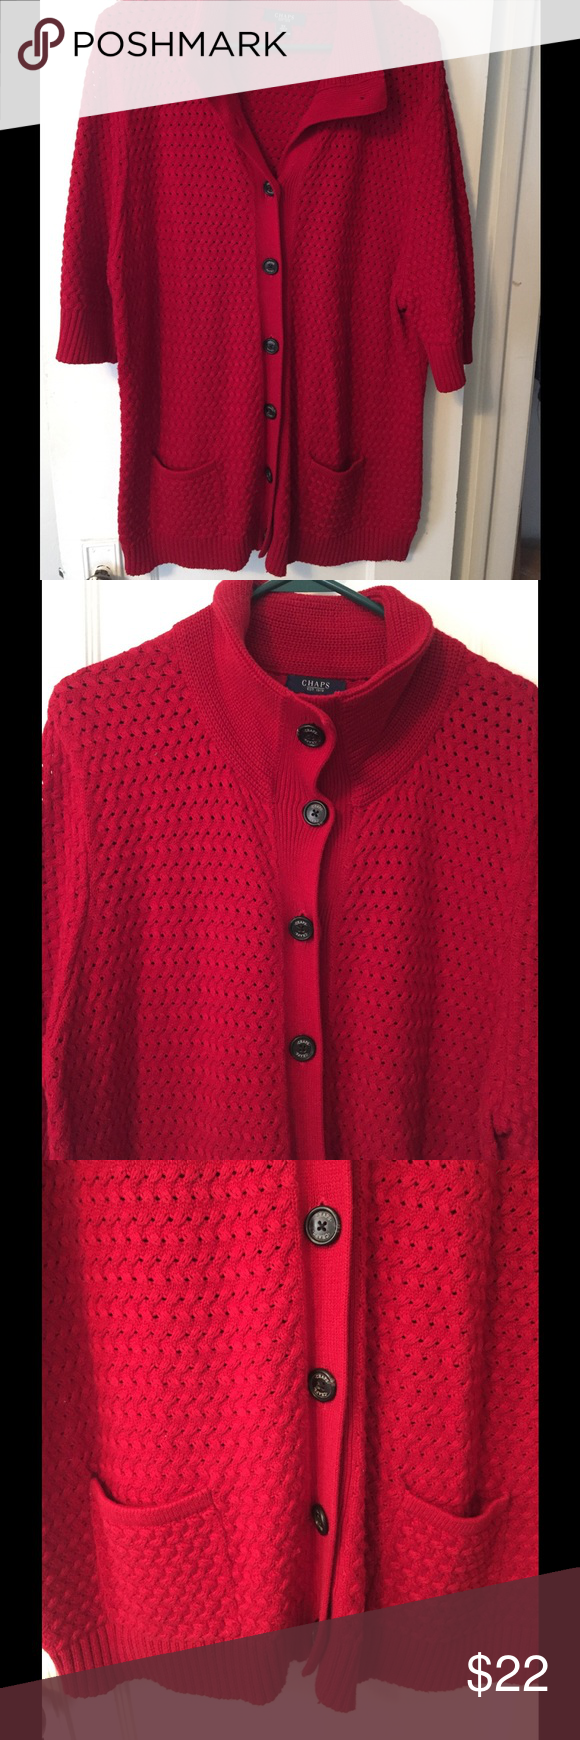 Chaps plus size 3x red short sleeve cardigan | Shorts, The office ...